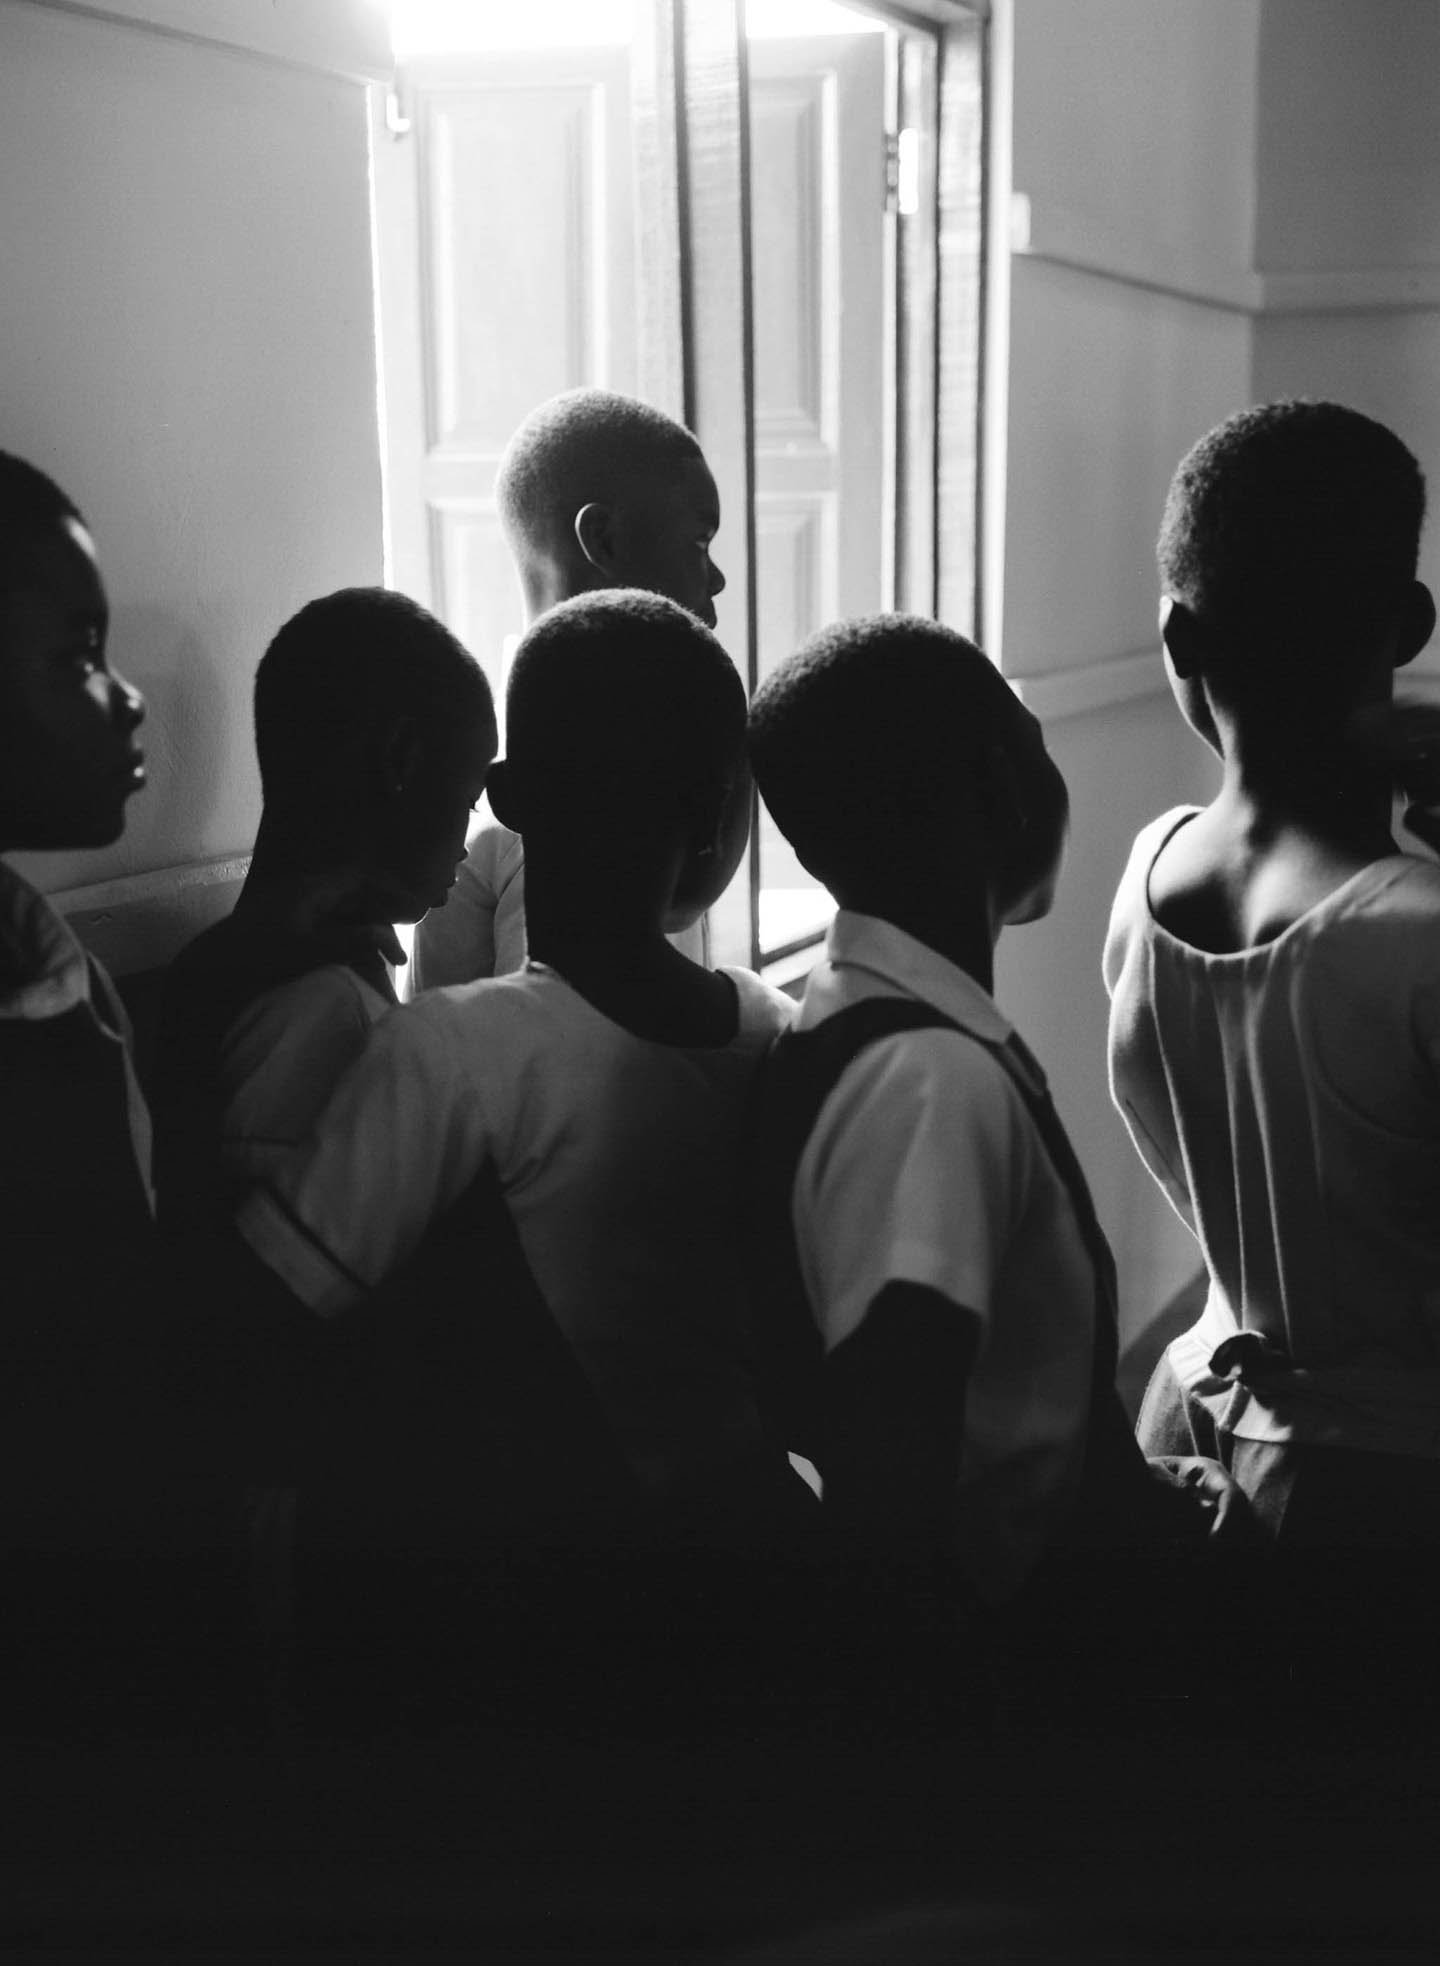 Melyssa Griffin x Pencils of Promise: Uplifting Ghana's educational system. Documentary by MOSSS